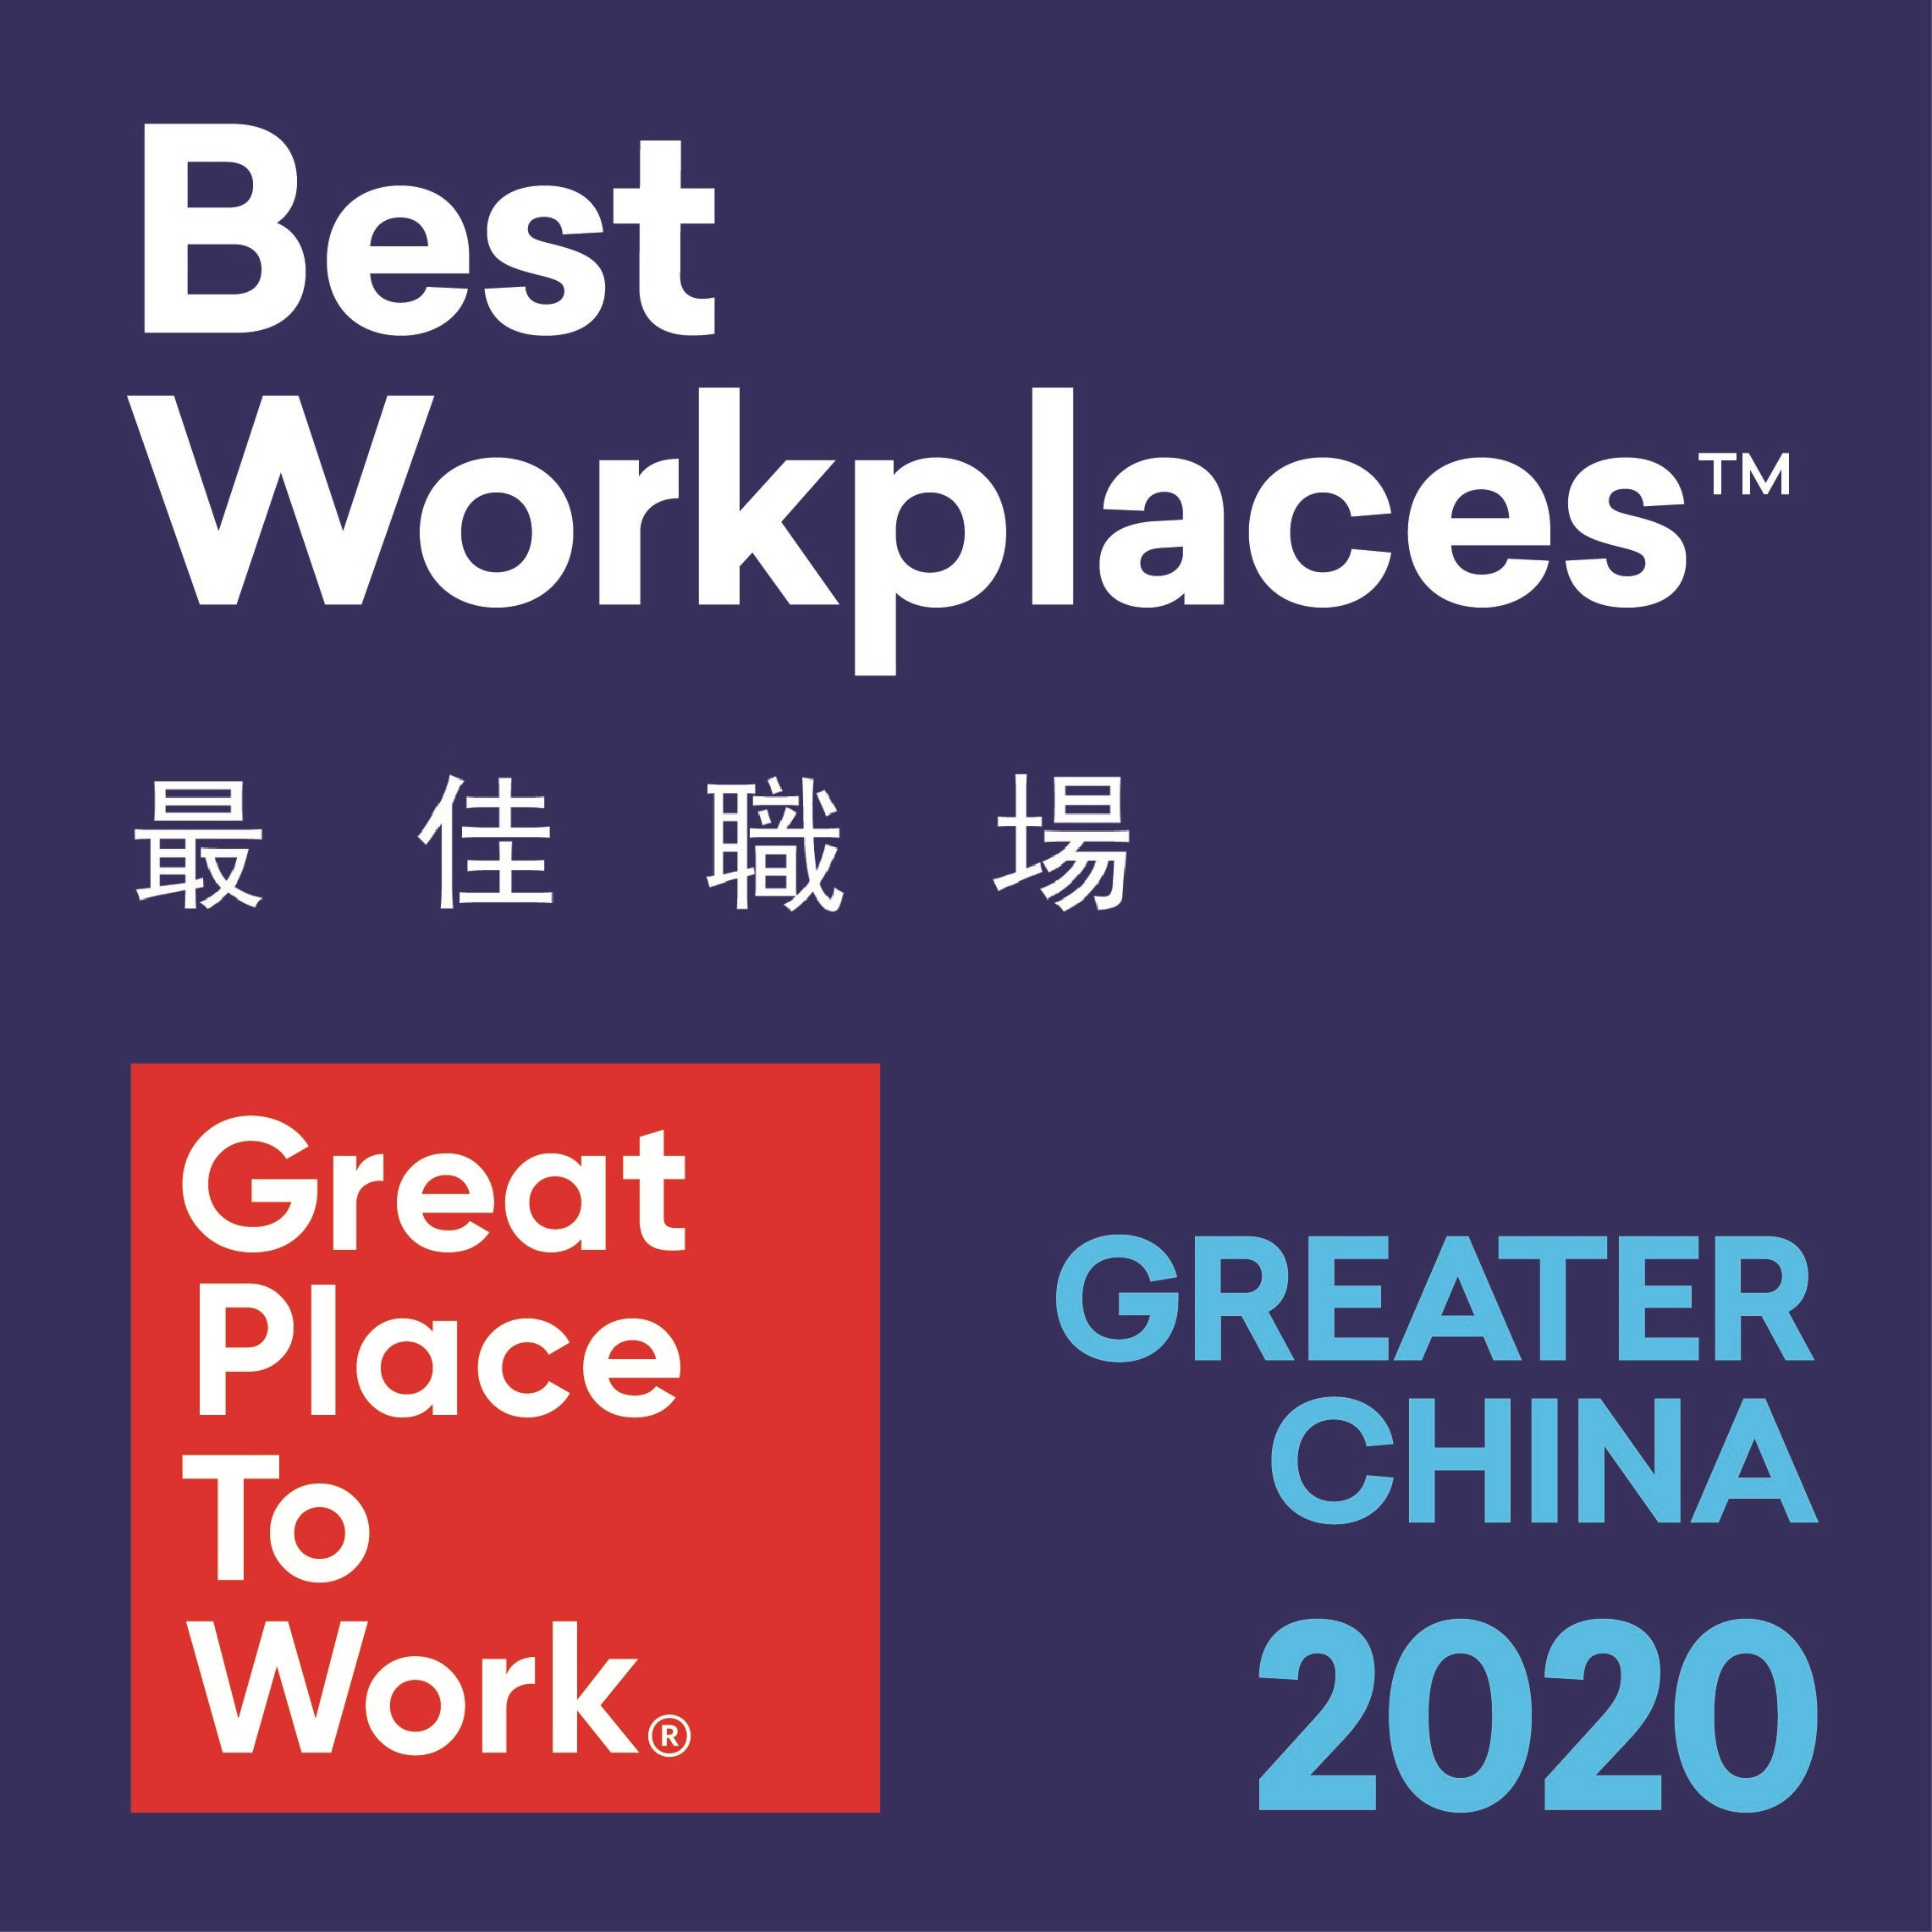 Best Workplaces Great place to Work Greater China 2020